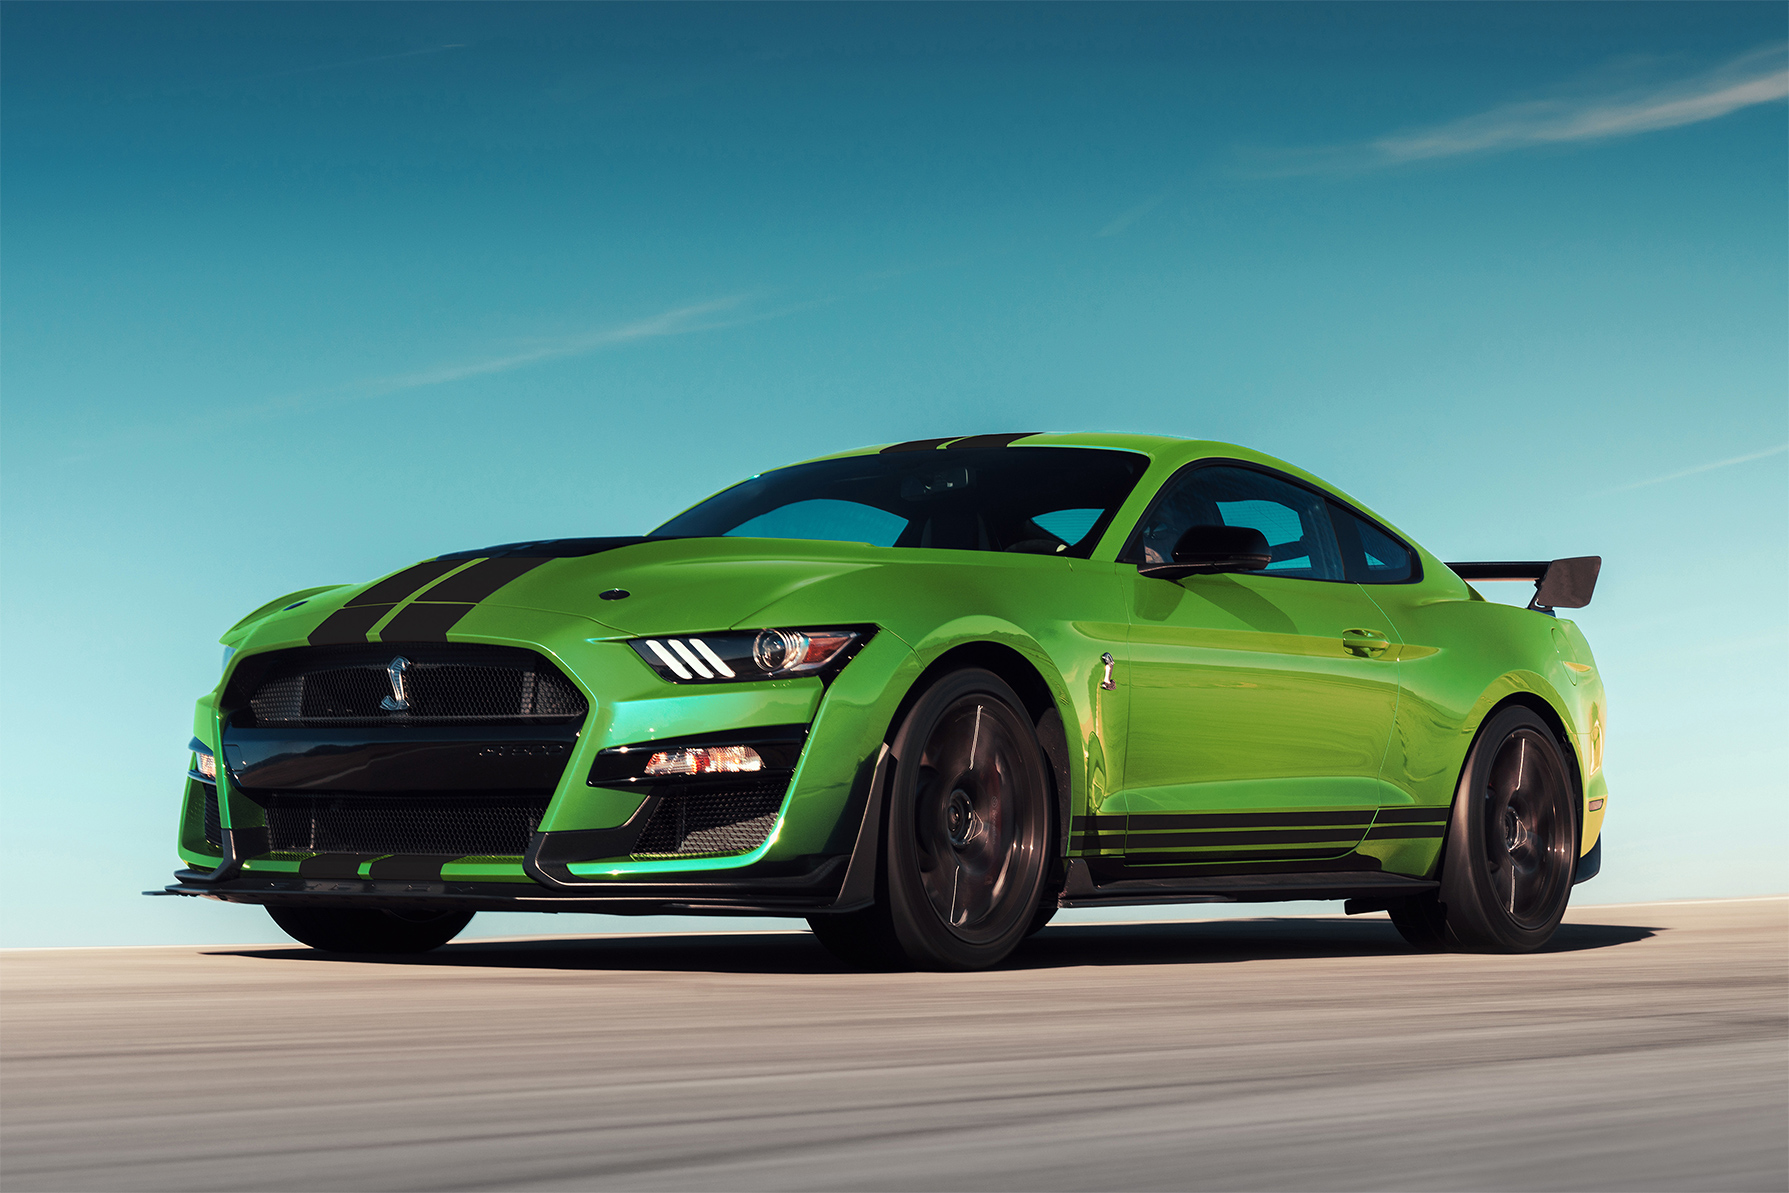 TrackWorthy - 2020 Ford Mustang GT500 in Grabber Lime (3)